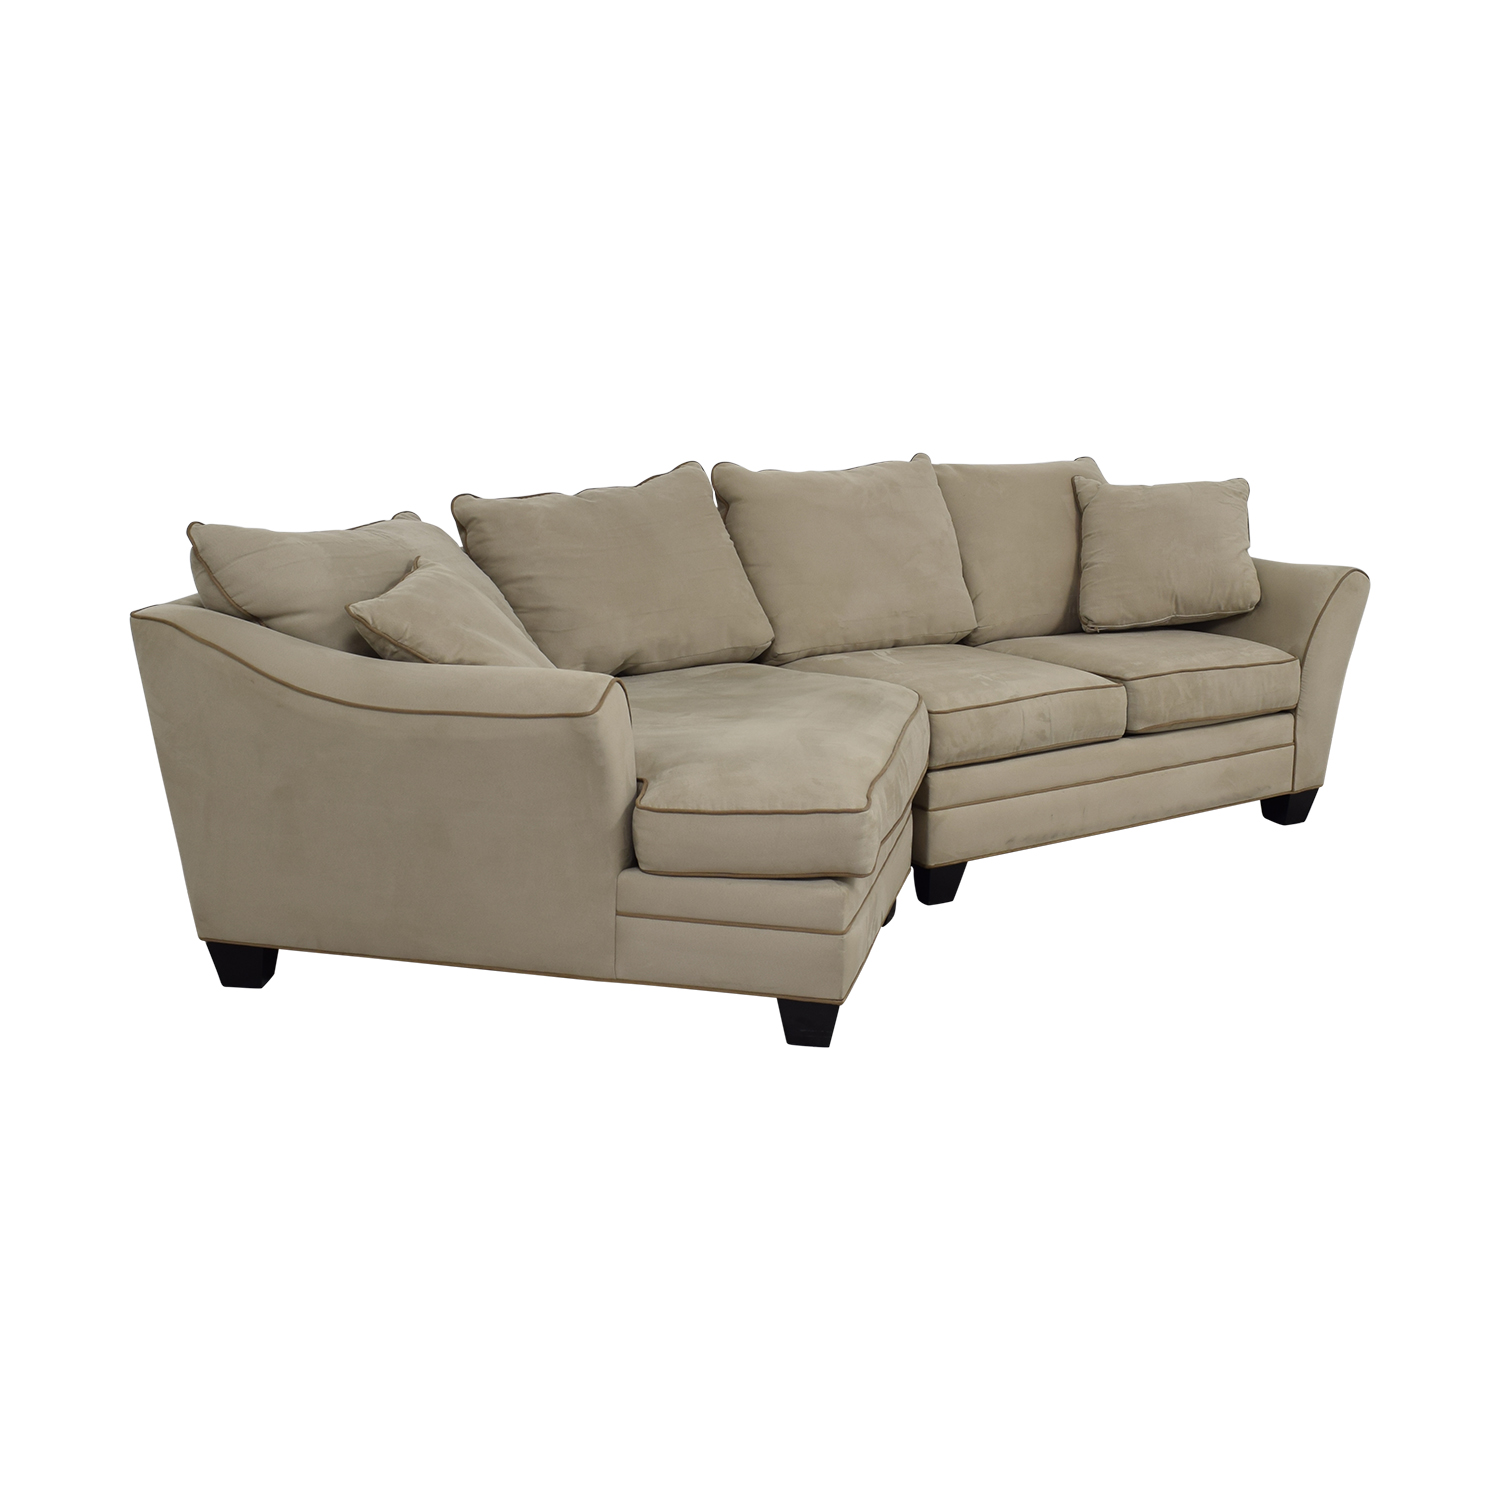 88 Off Raymour Amp Flanigan Raymour Amp Flanigan Foresthill Microfiber Beige Sectional With Angled Chaise Sofas